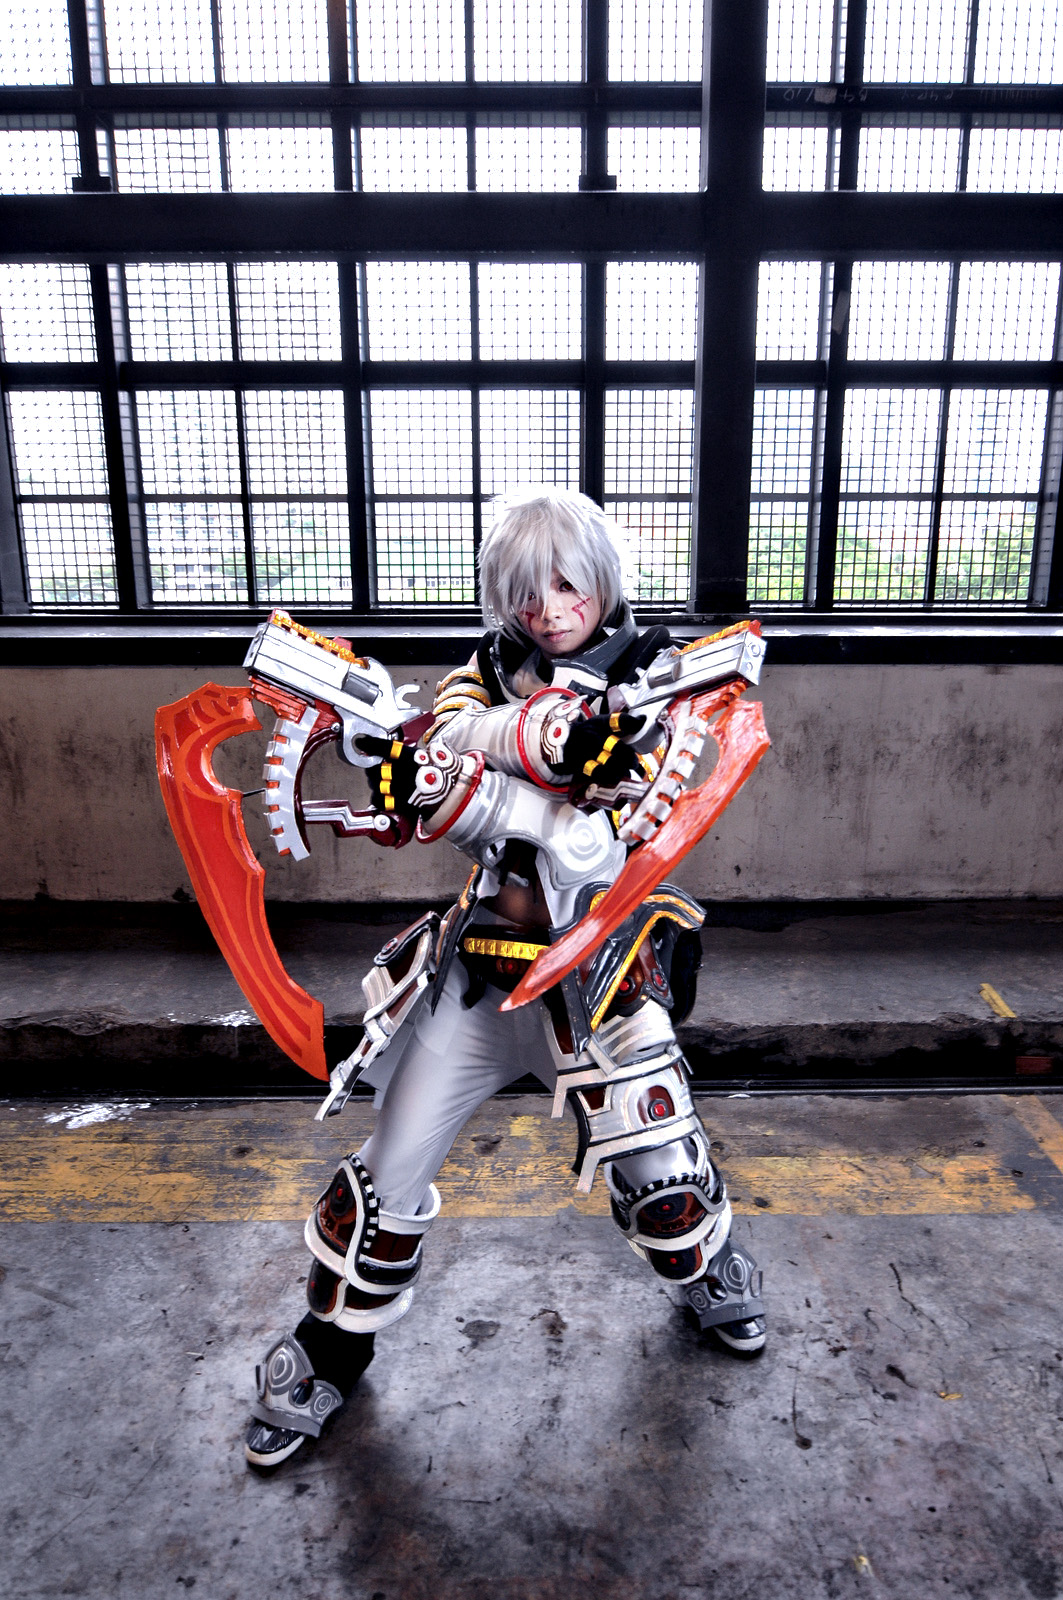 Hack//gu - Haseo the Xth form by Adellexe on DeviantArt